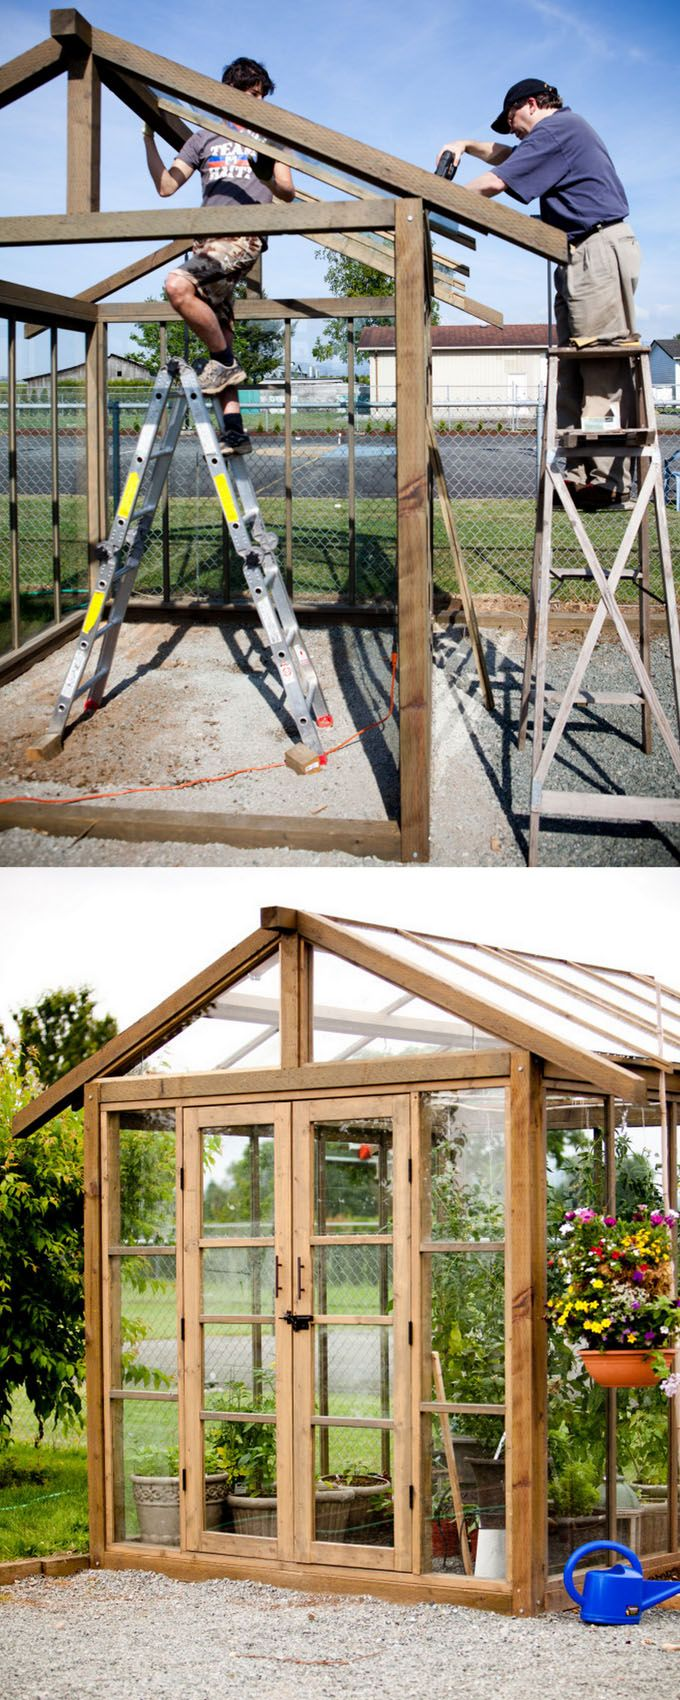 12 Most Beautiful Diy Shed Ideas With Reclaimed Windows Backyard Office Greenhouse Shed Diy Shed